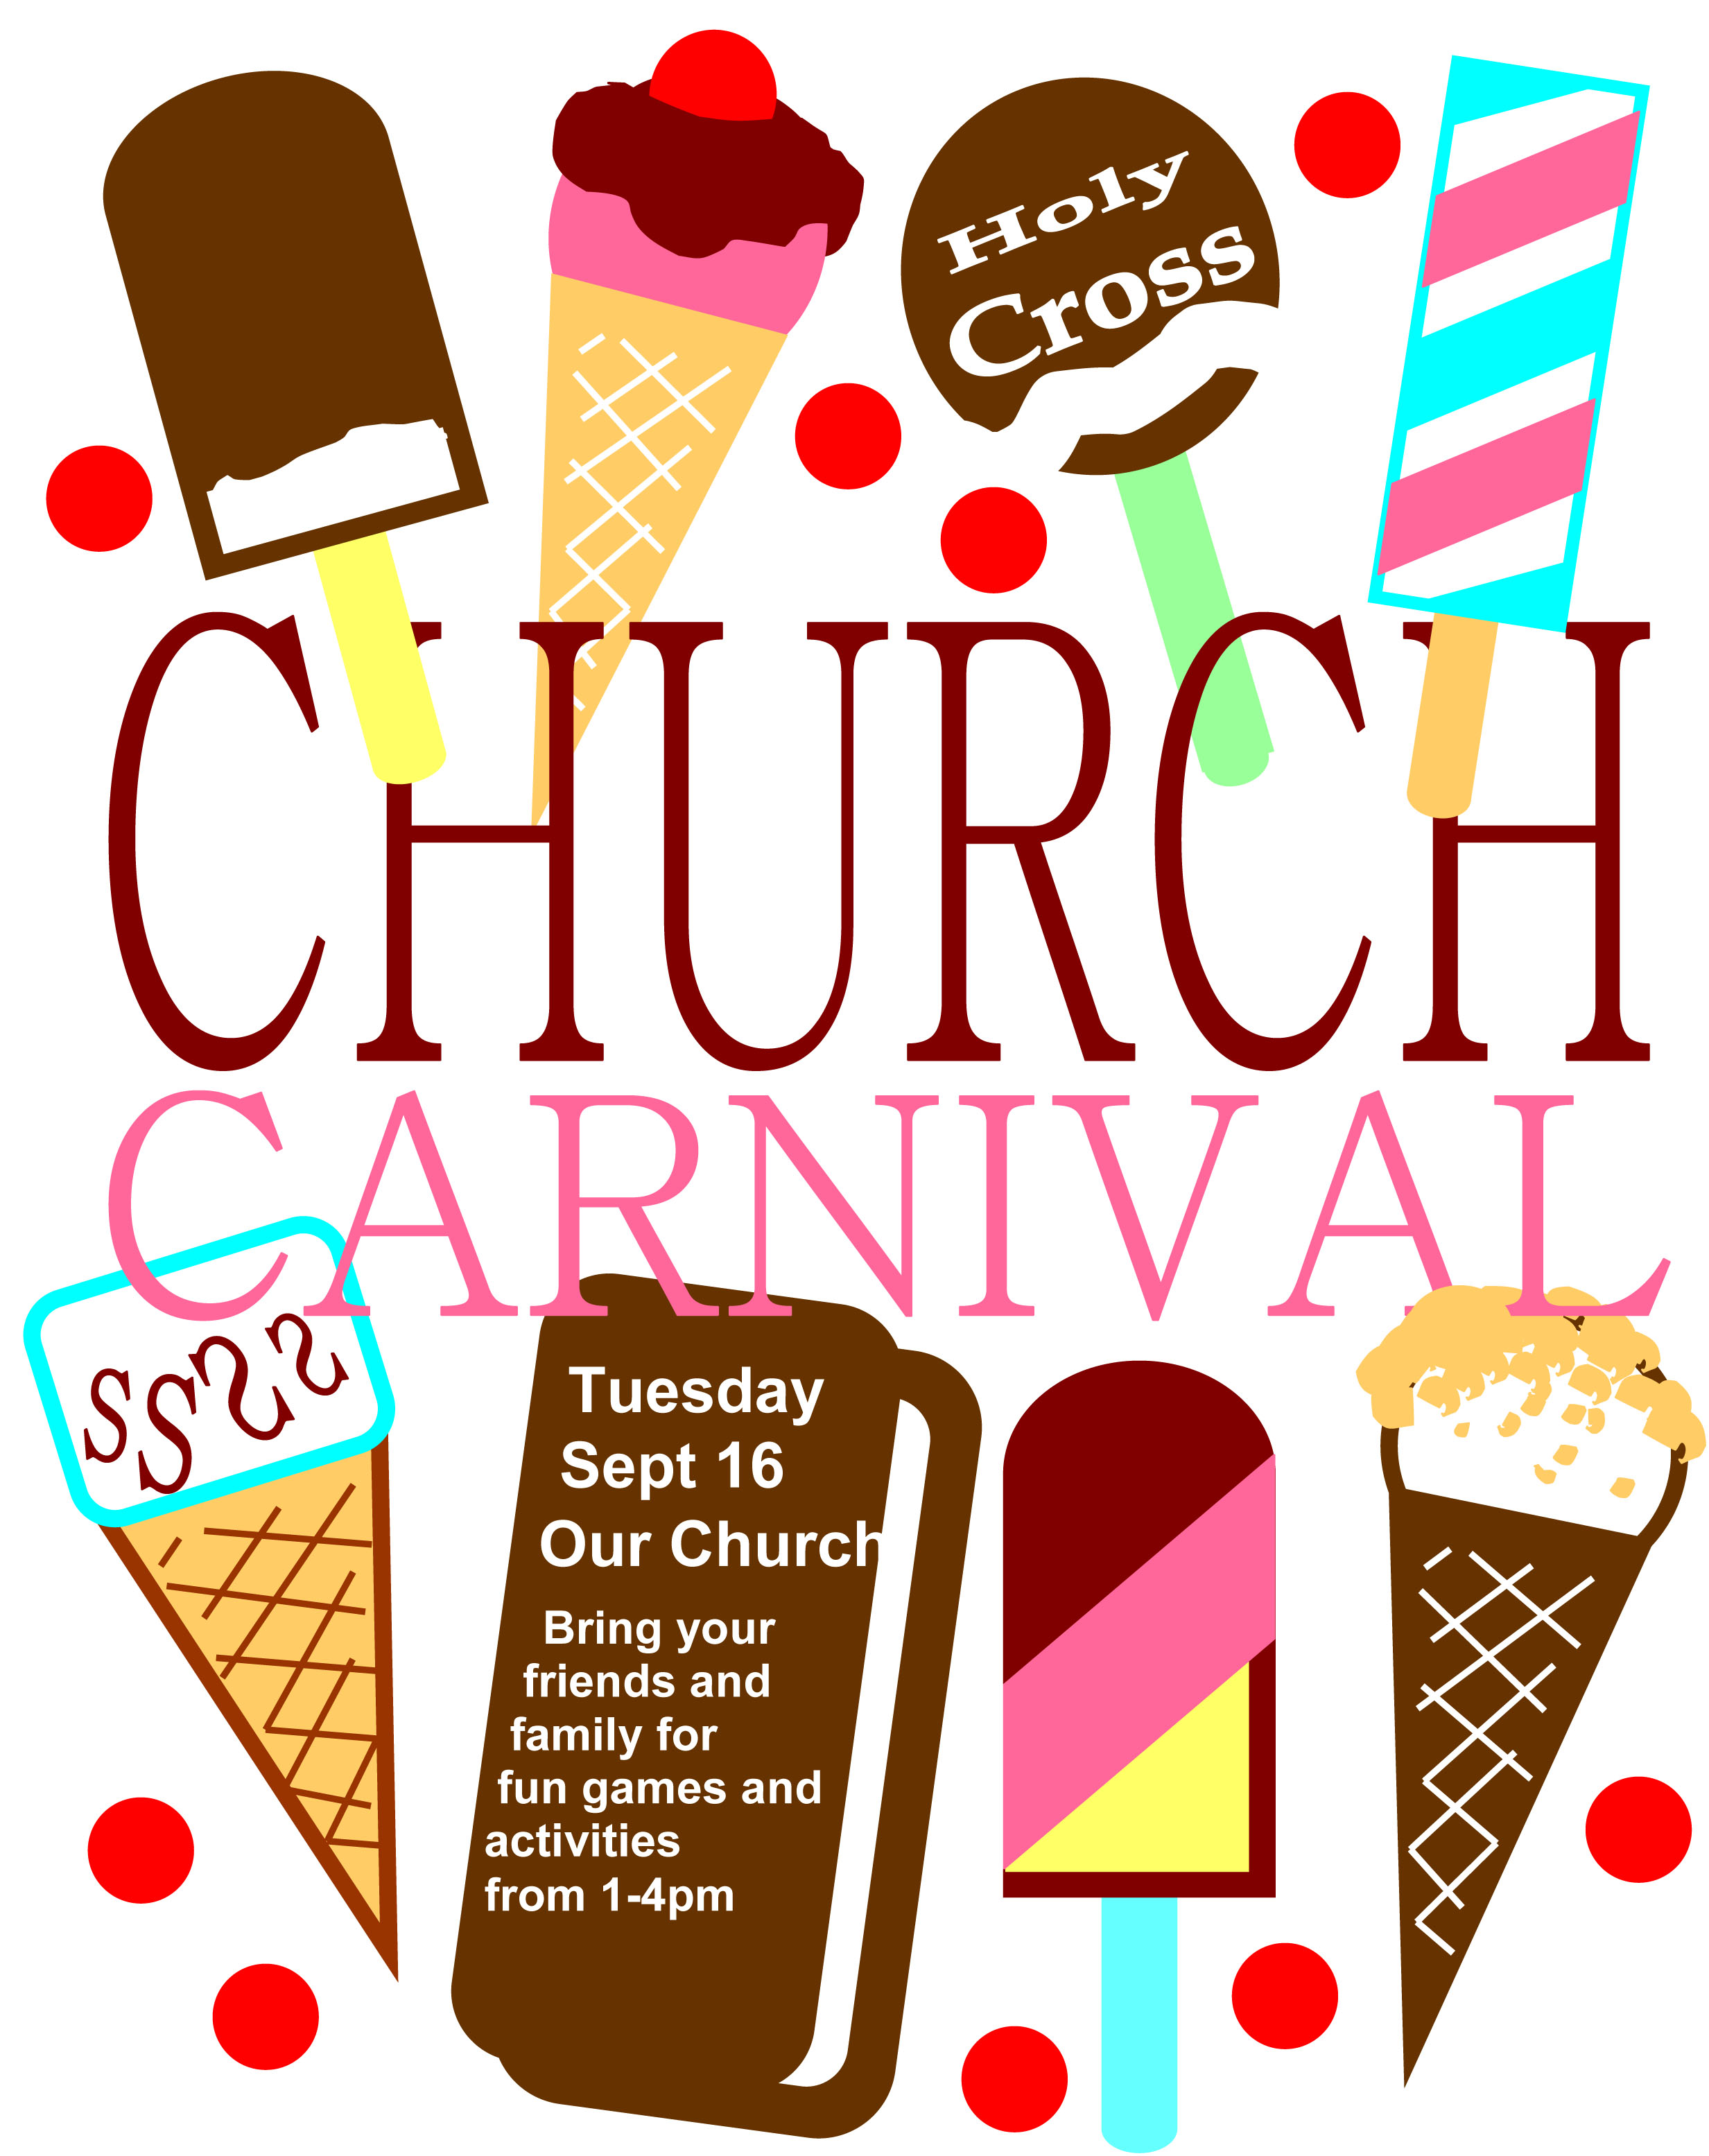 flyer clipart clipart kid church carnival flyer templates using microsoft office